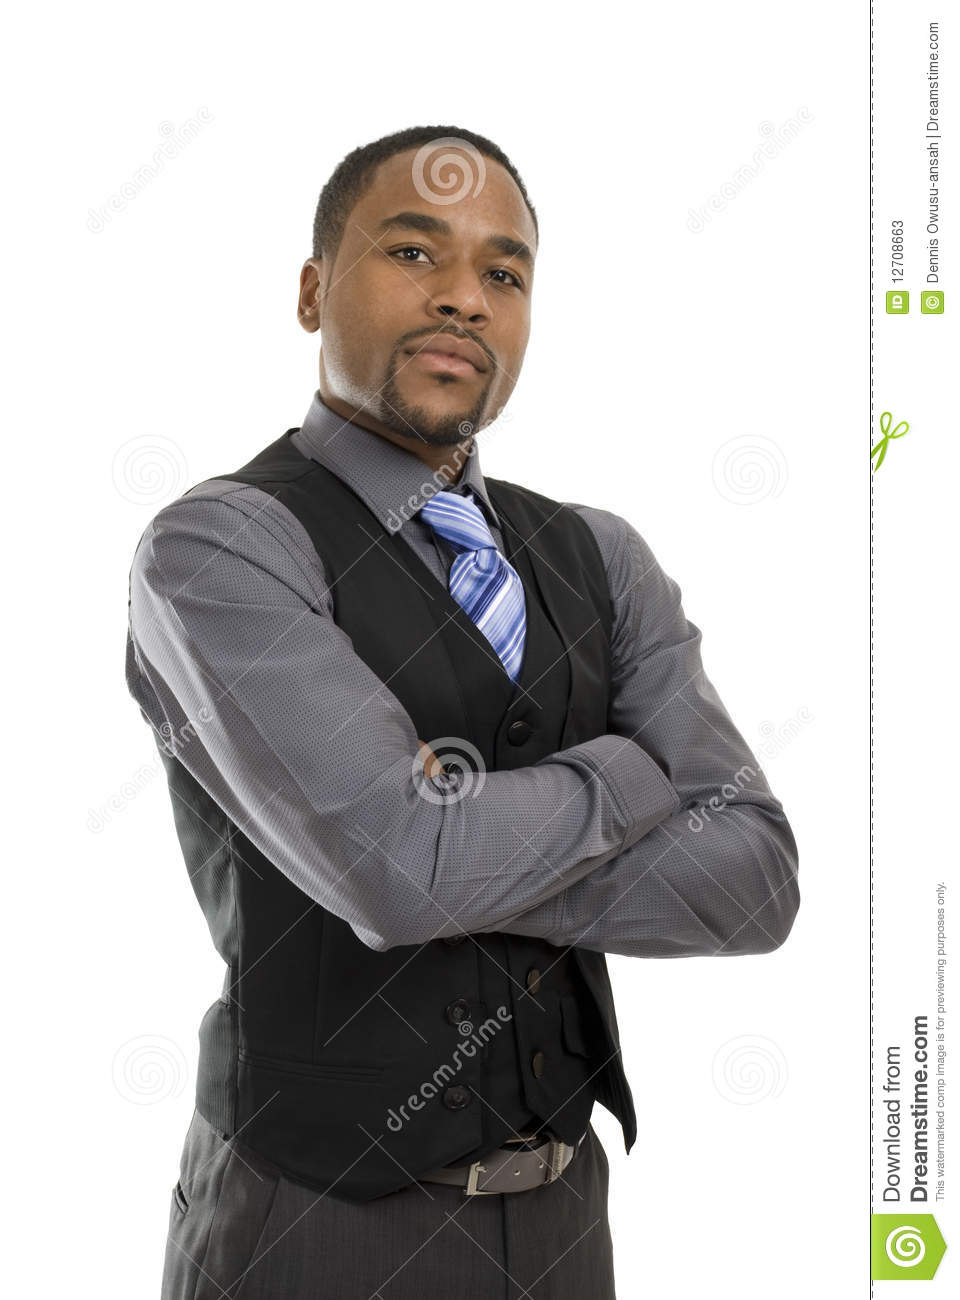 successful-african-american-business-man-12708663.jpg